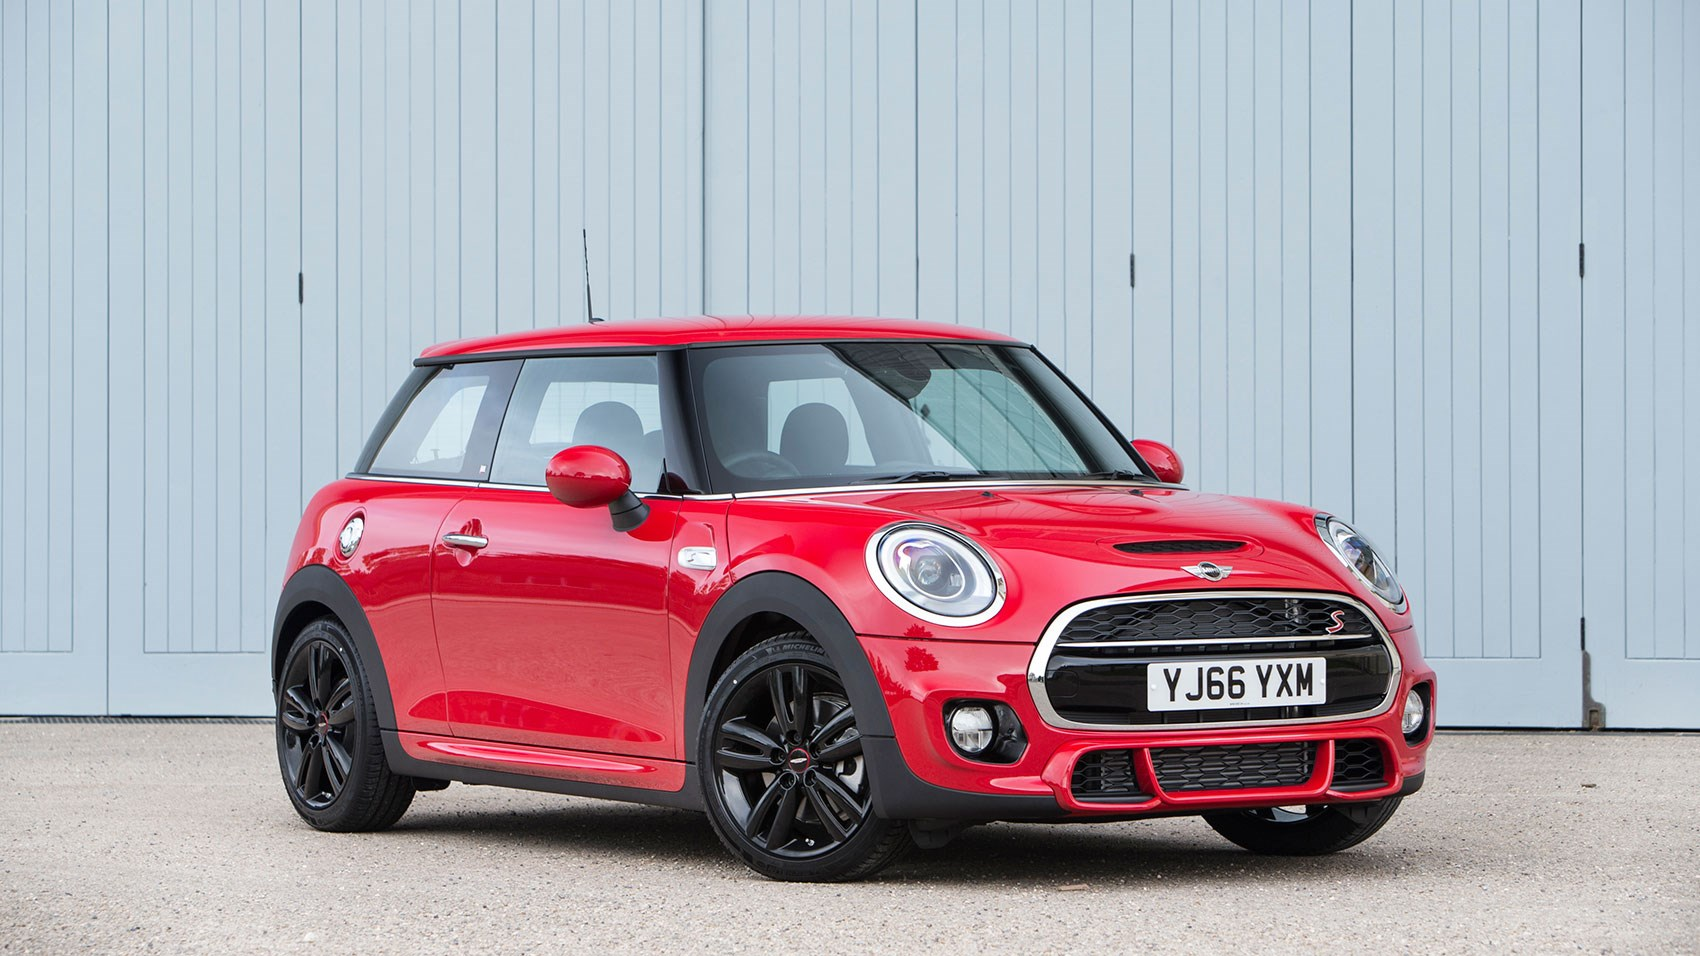 2017 Mini Cooper Hatchback Jcw Review And Specs >> Mini Cooper S Works 210 2017 Review By Car Magazine